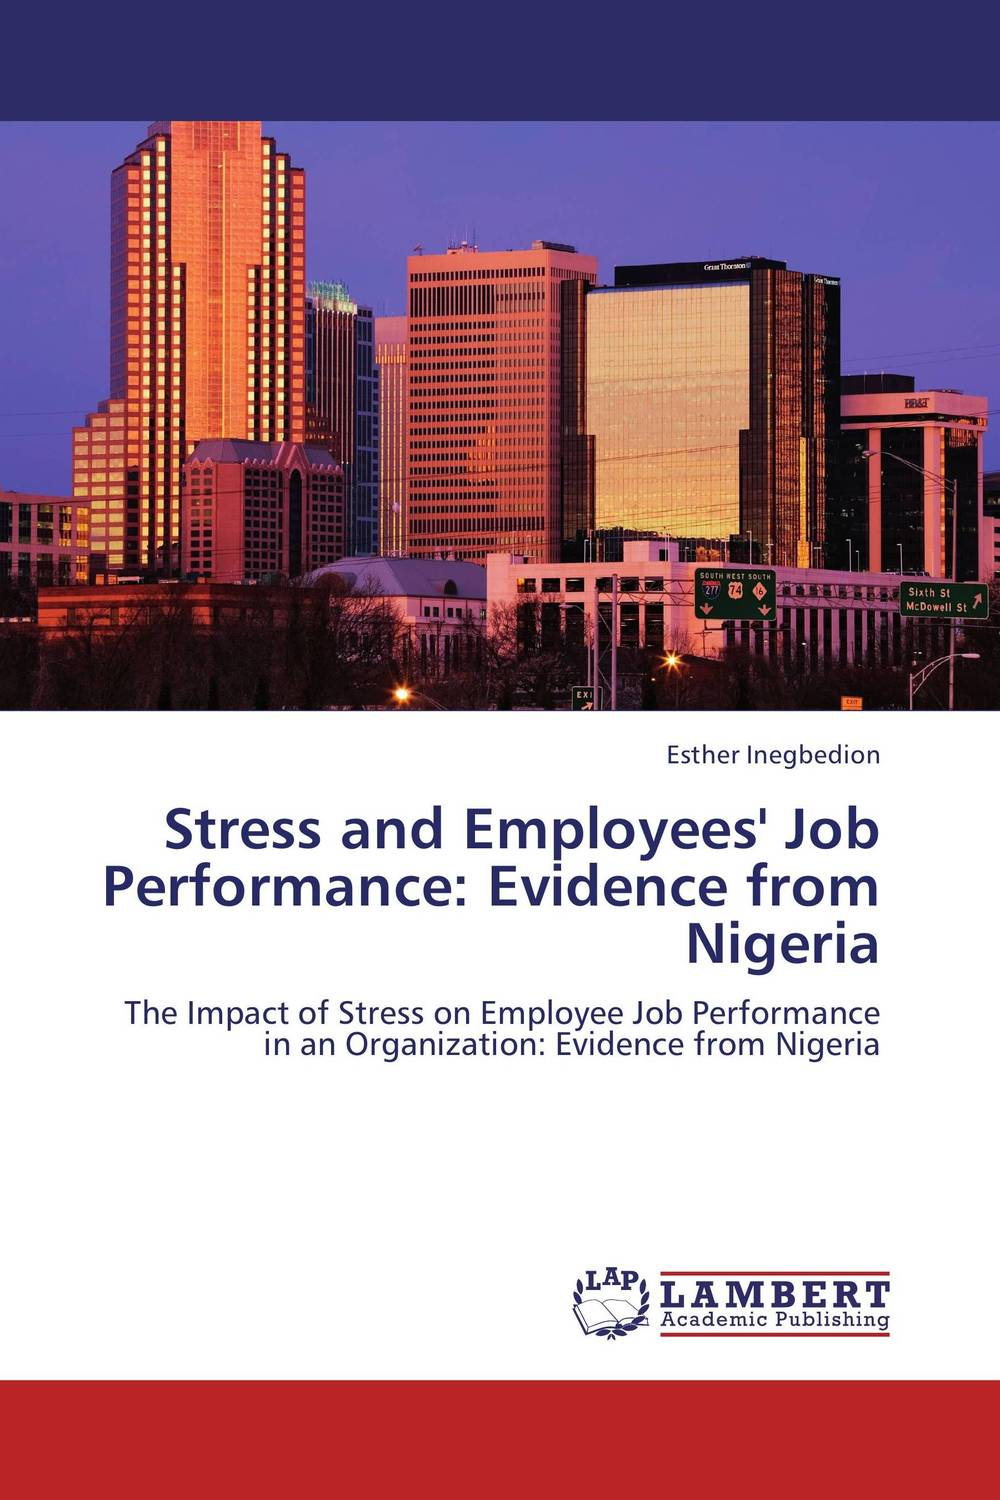 Stress and Employees' Job Performance: Evidence from Nigeria dr ripudaman singh mrs arihant kaur bhalla and er indpreet kaur stress among bank employees